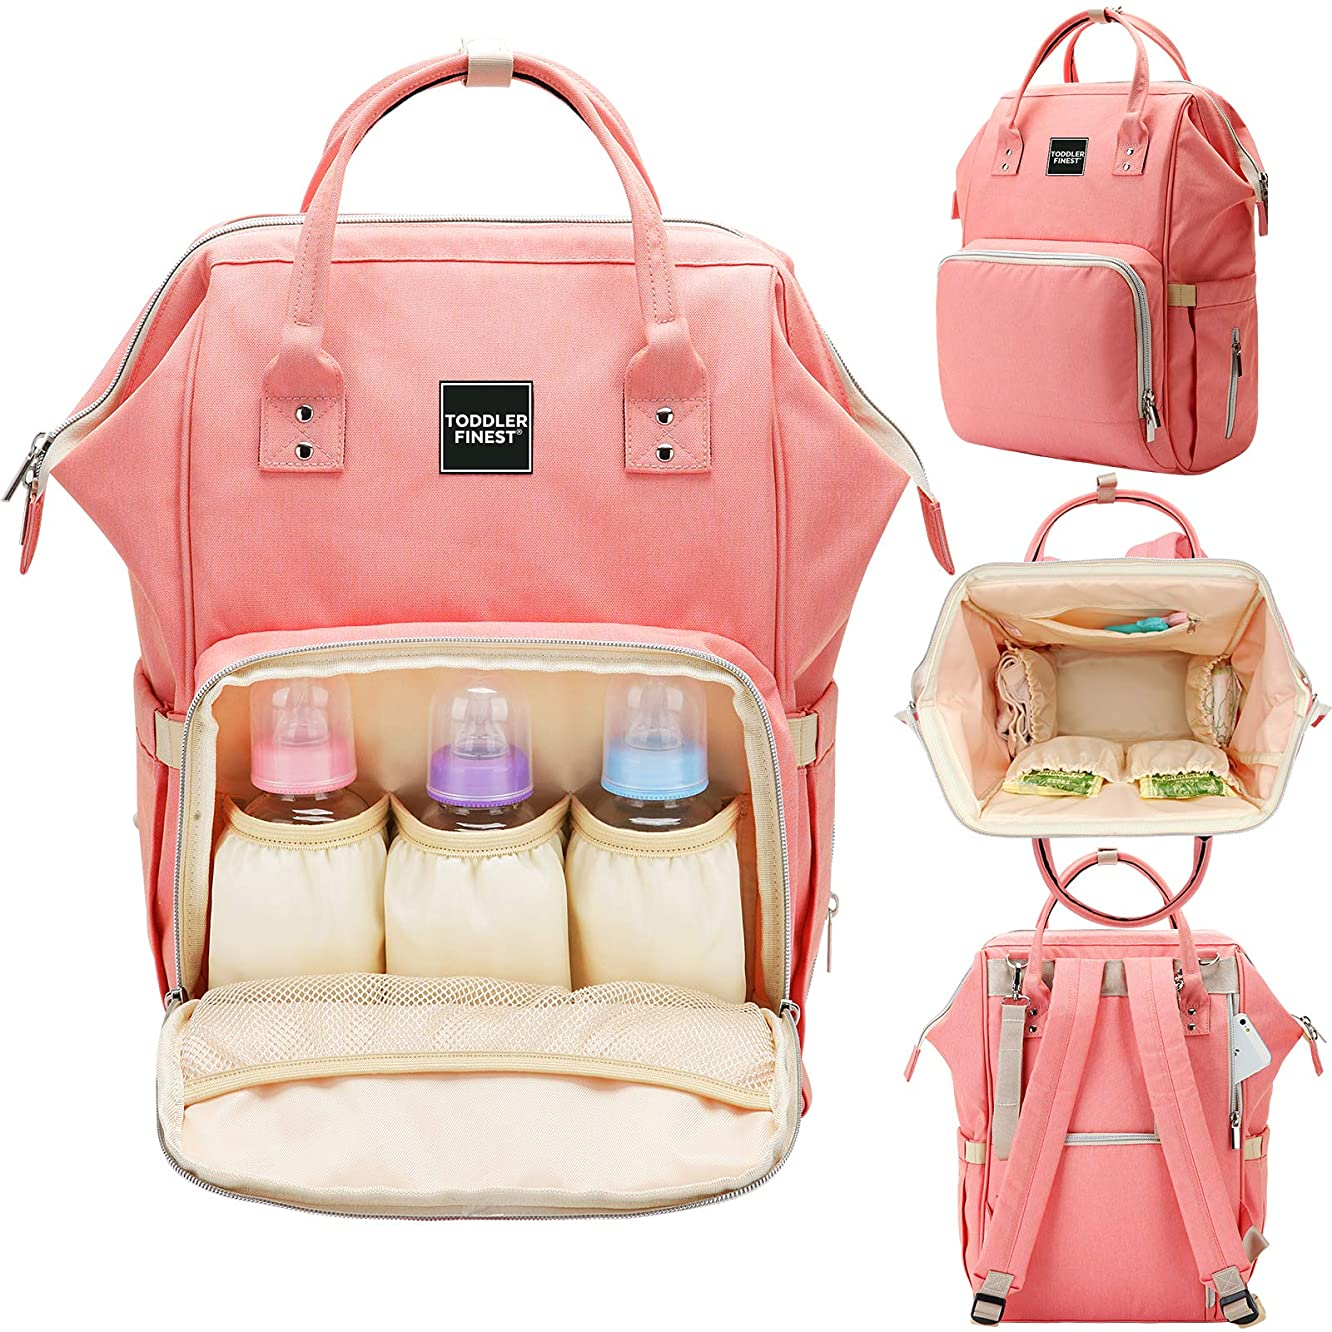 Designer Diaper Bag Backpack - Travel Organizer Tote Nappy Baby Bags for Girls & Boys - Multi-Function, Waterproof, Large Capacity, Stylish, Durable - w/Stroller Straps - for Mom Dad Men Women (Pink)